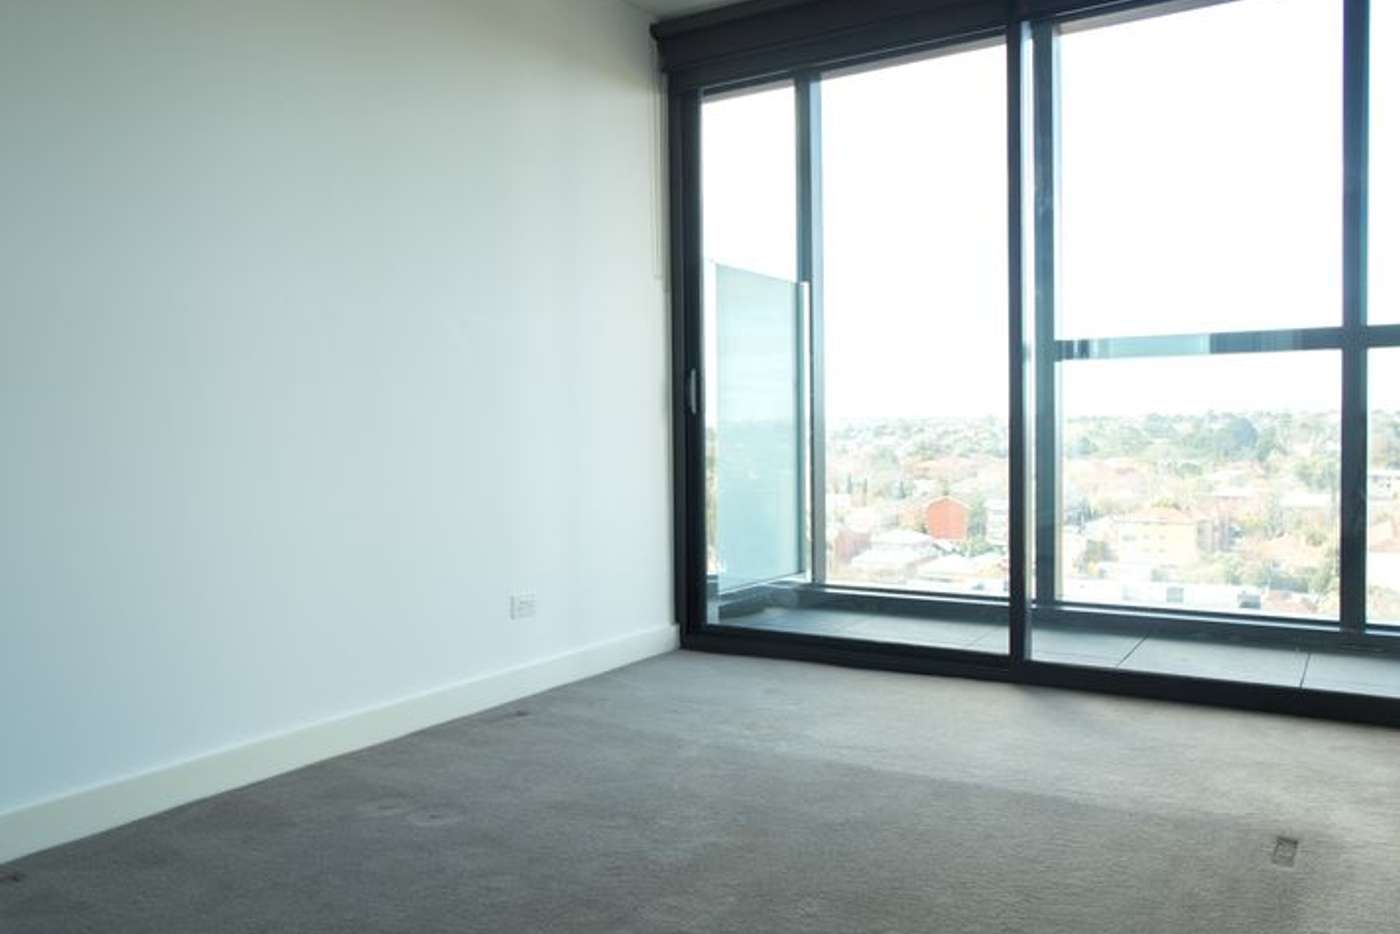 Fifth view of Homely apartment listing, 913/35 Malcolm Street, South Yarra VIC 3141